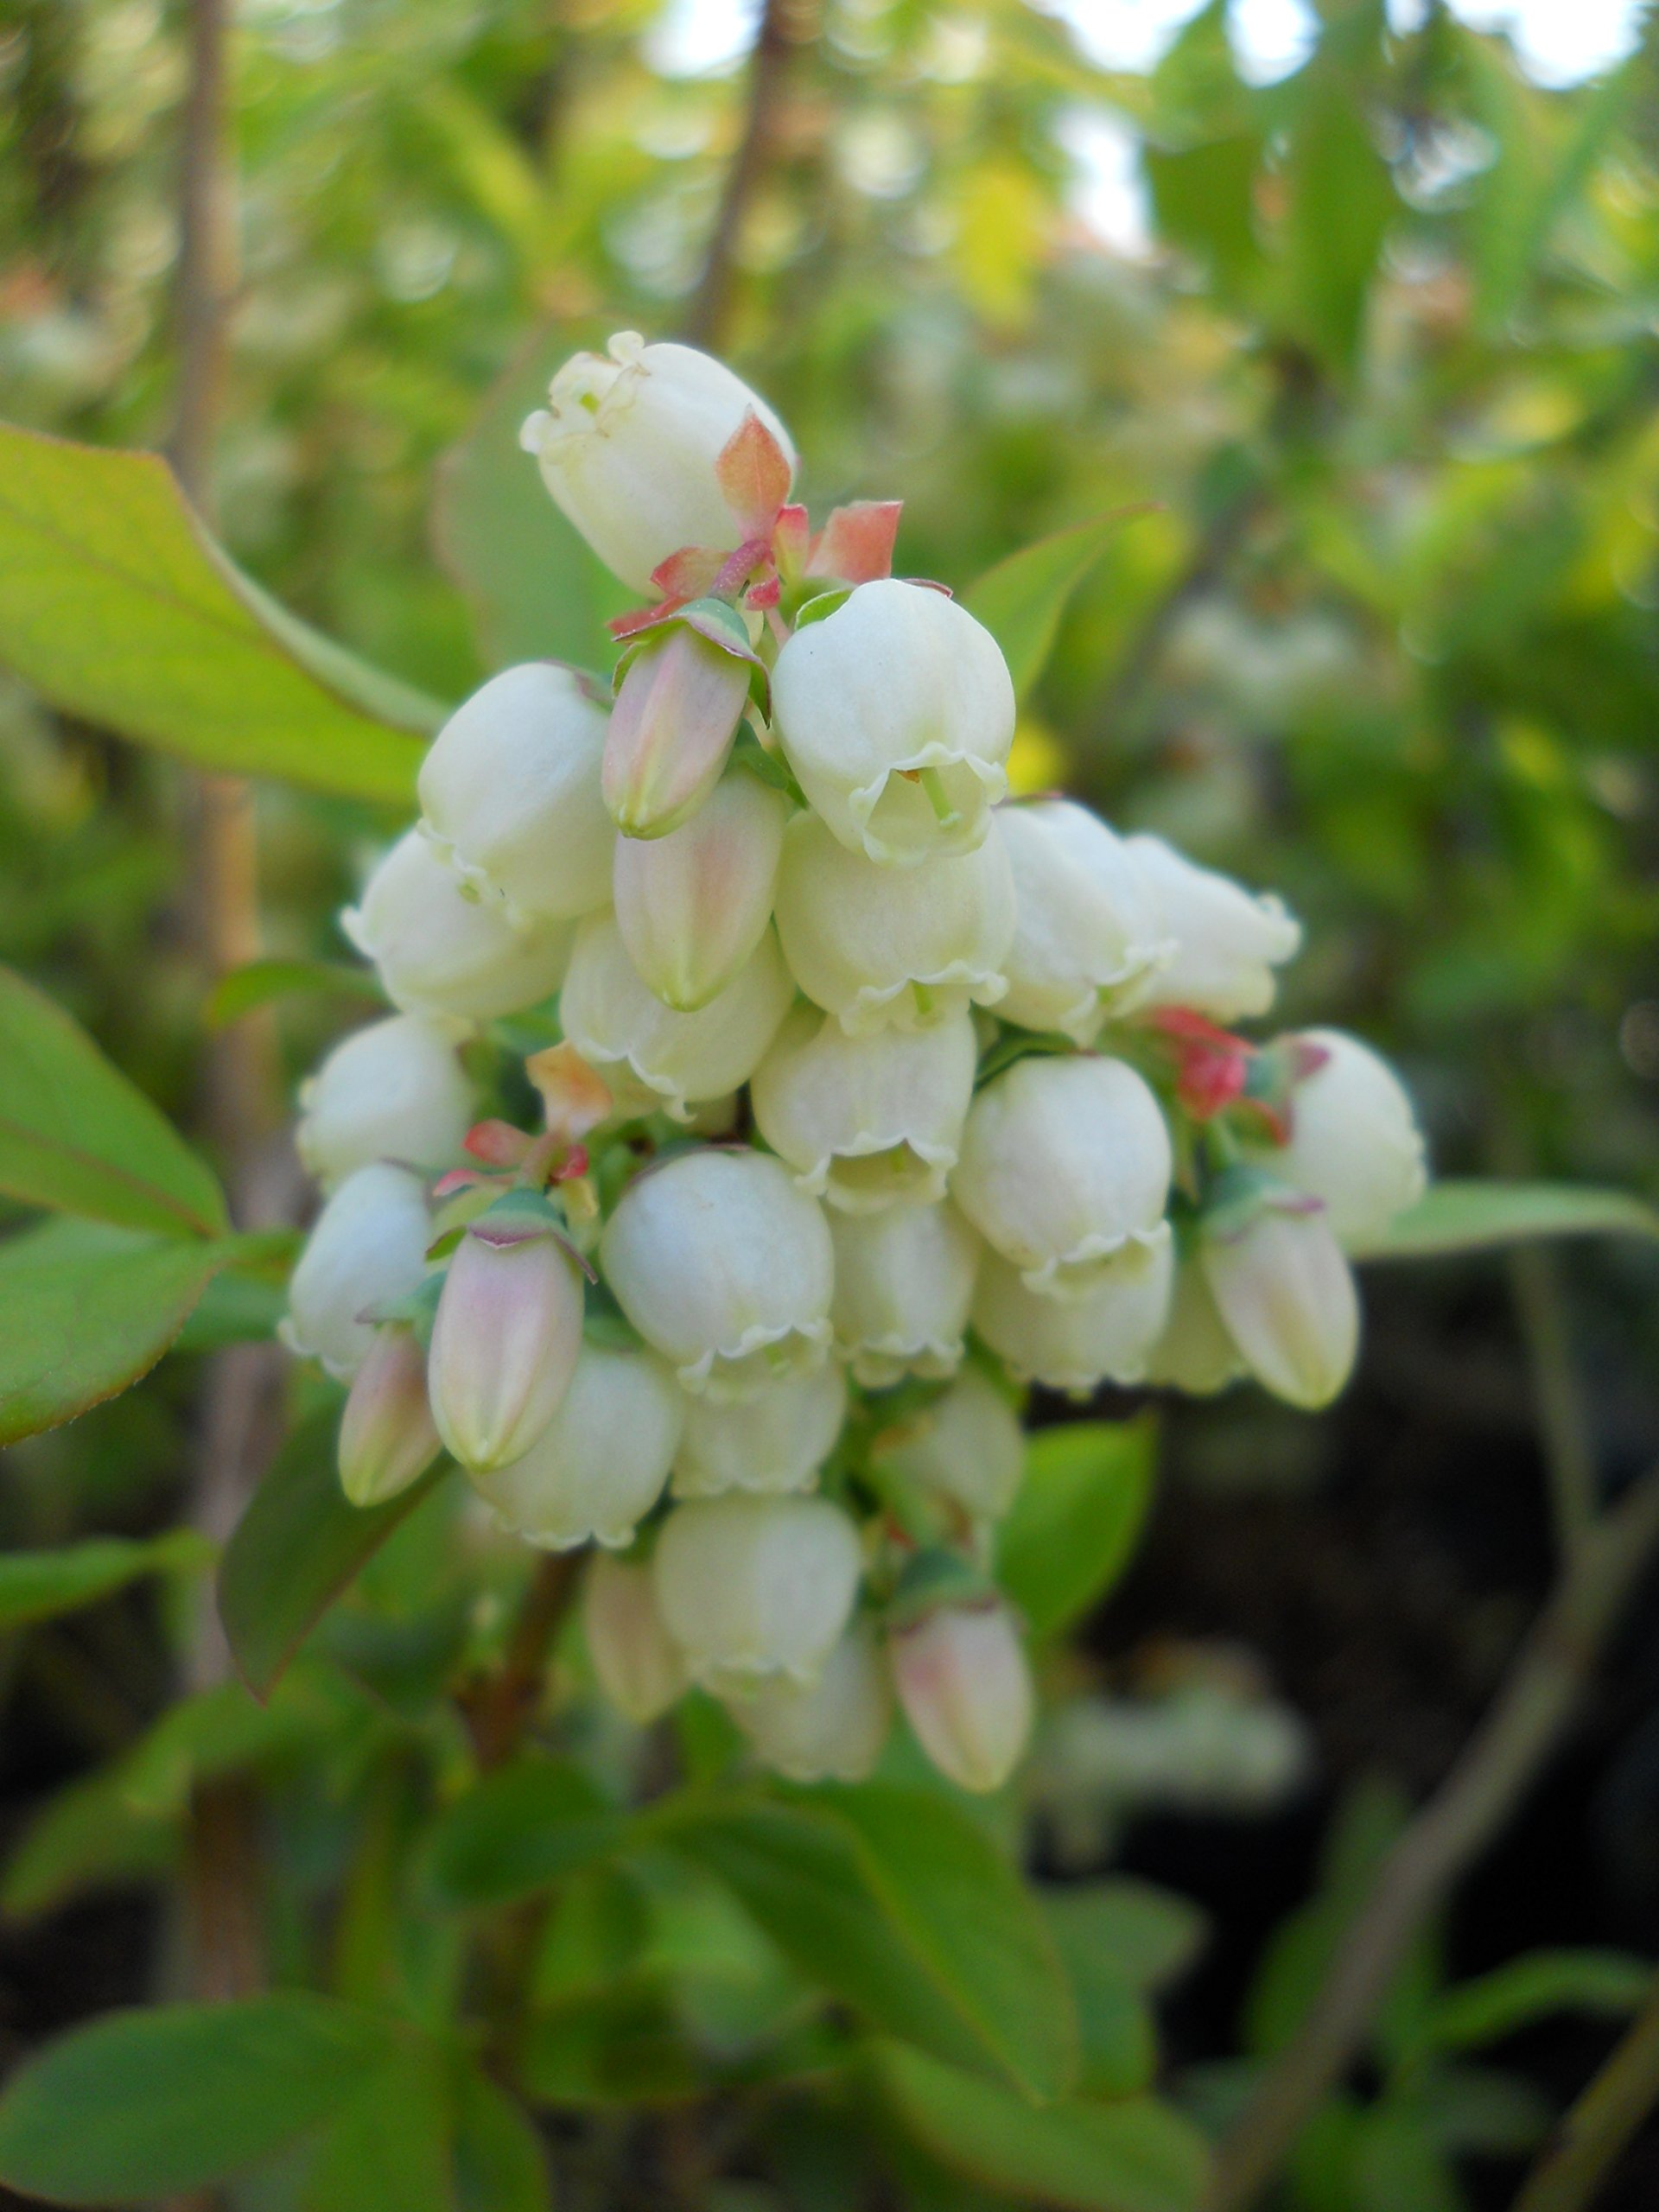 Vaccinium corymbosum 'Patriot' (HighBush Blueberry) Edible-Shrub, #3 - Size Container by Green Promise Farms (Image #2)